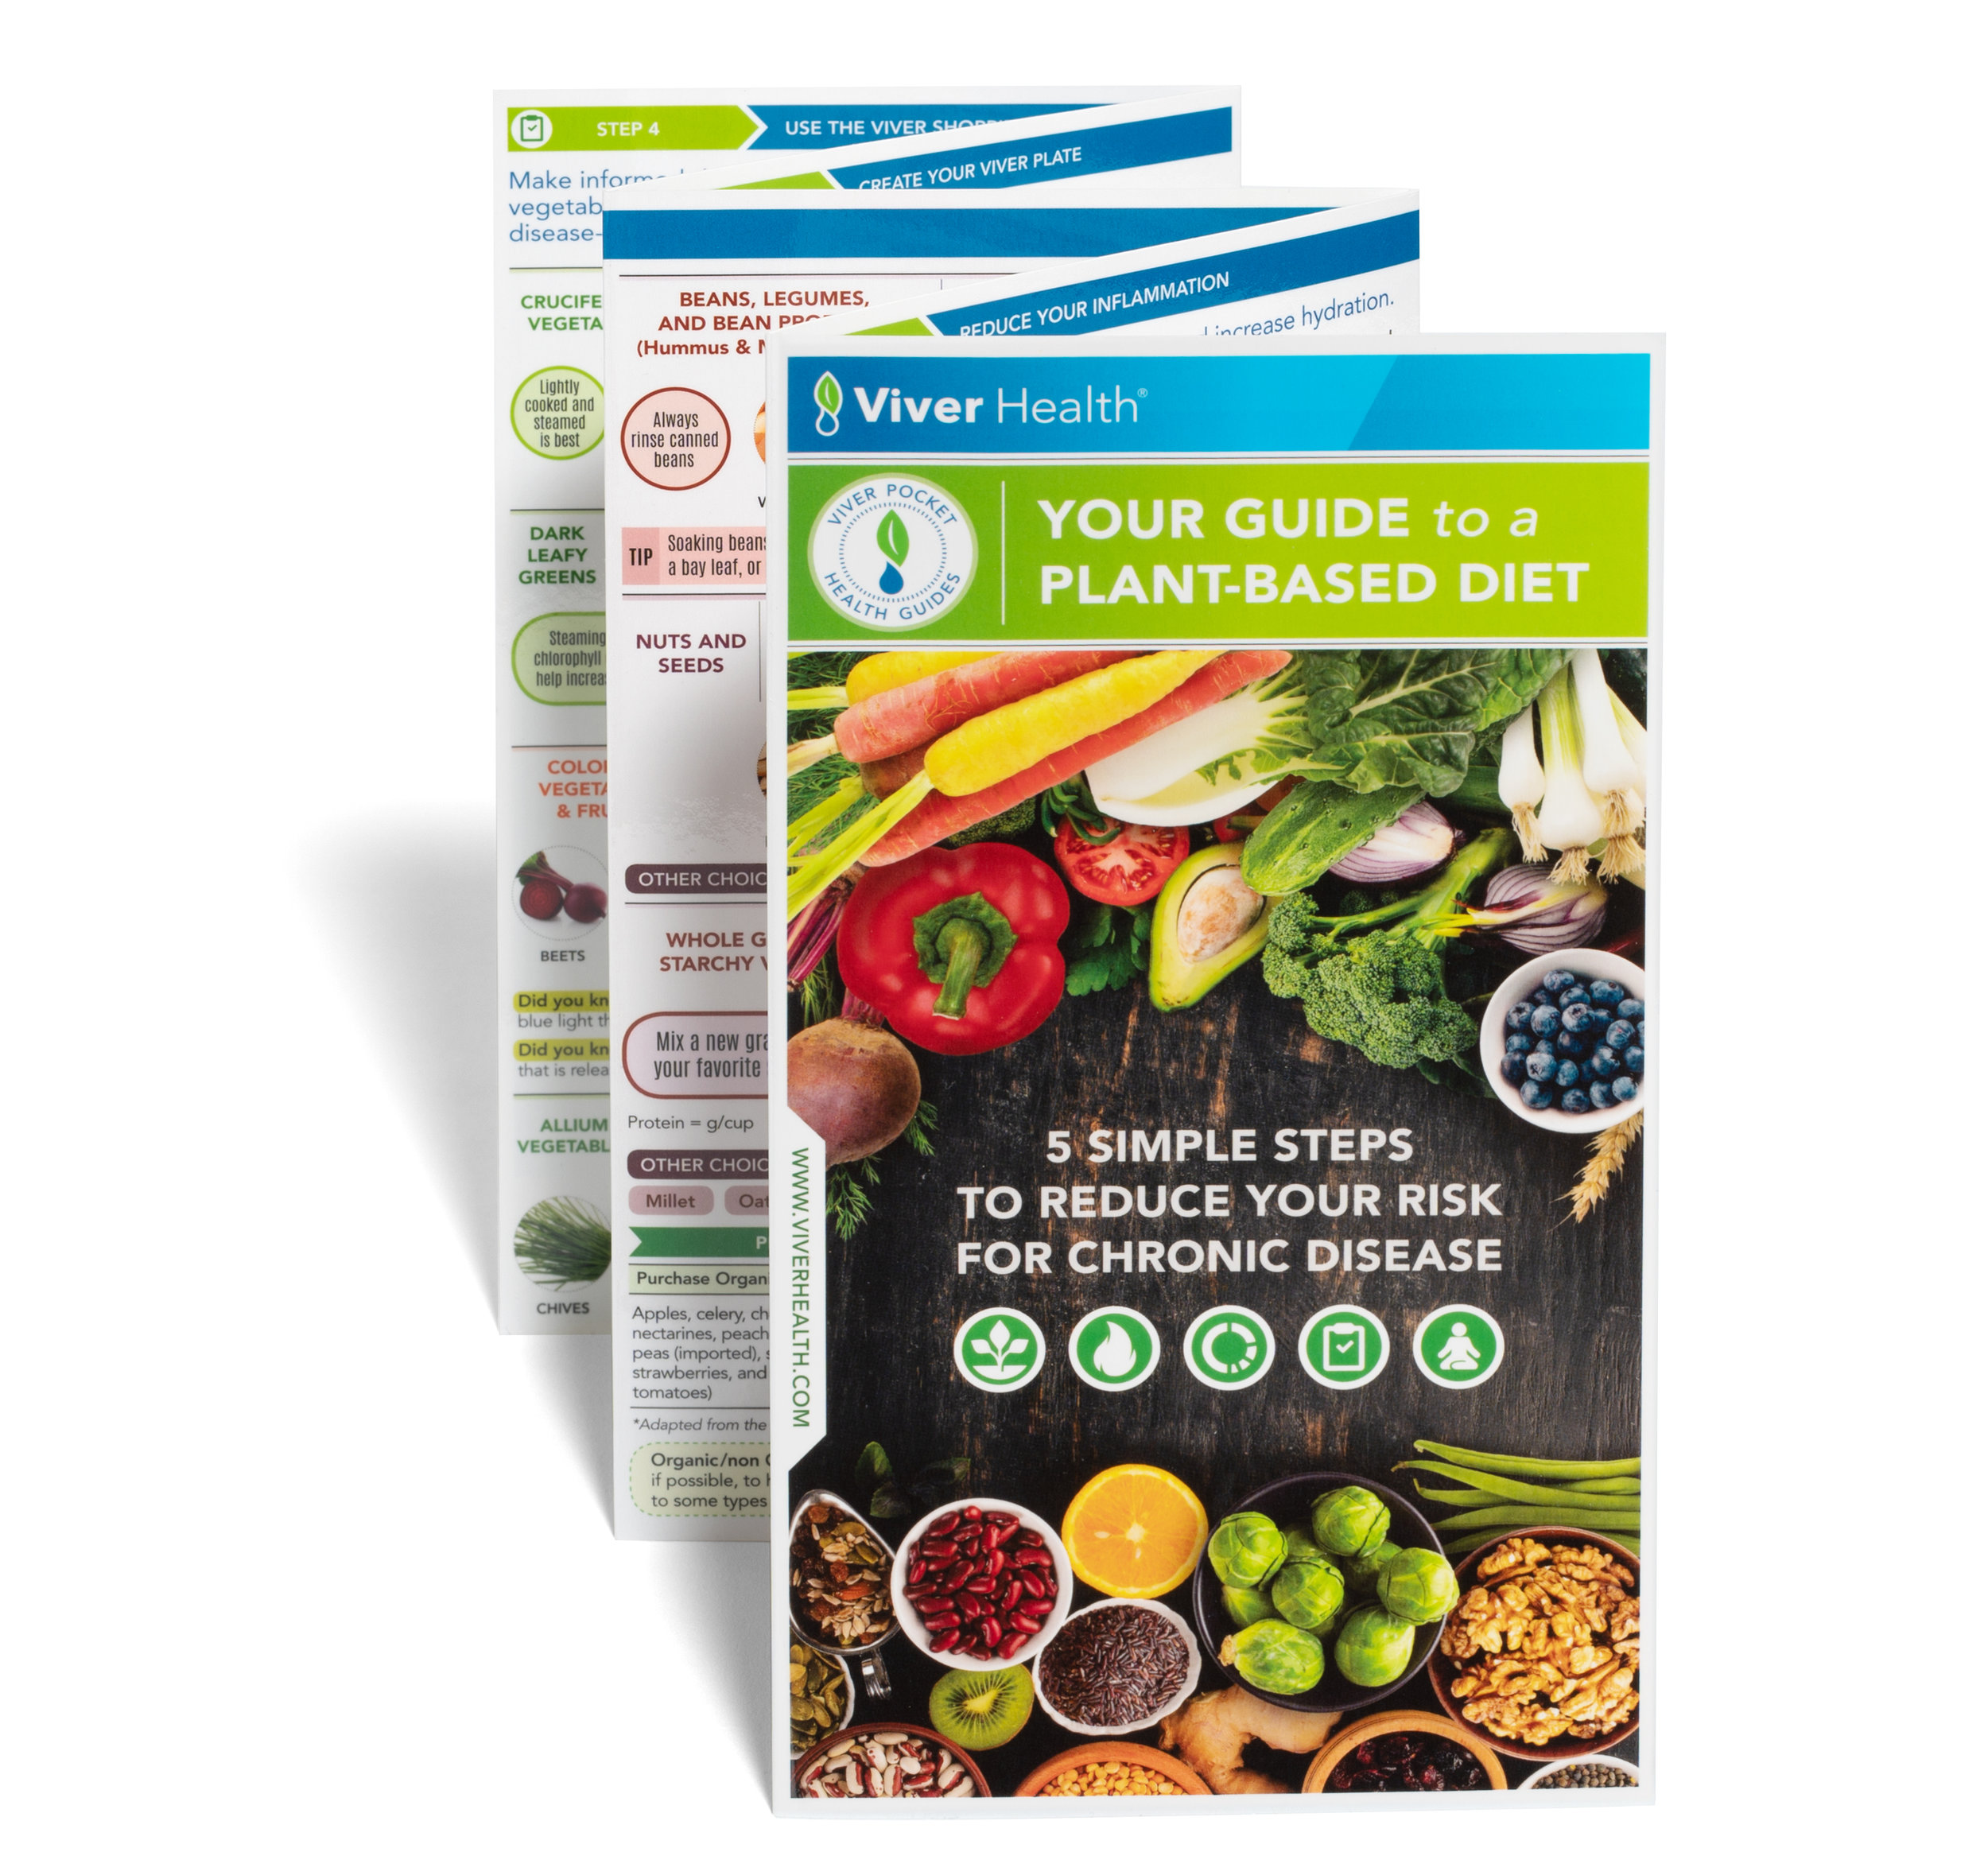 Your Guide to a Plant-based Diet: 5 Simple Steps to Reduce Your Risk of Chronic Disease - Please click here to order our latest Guide